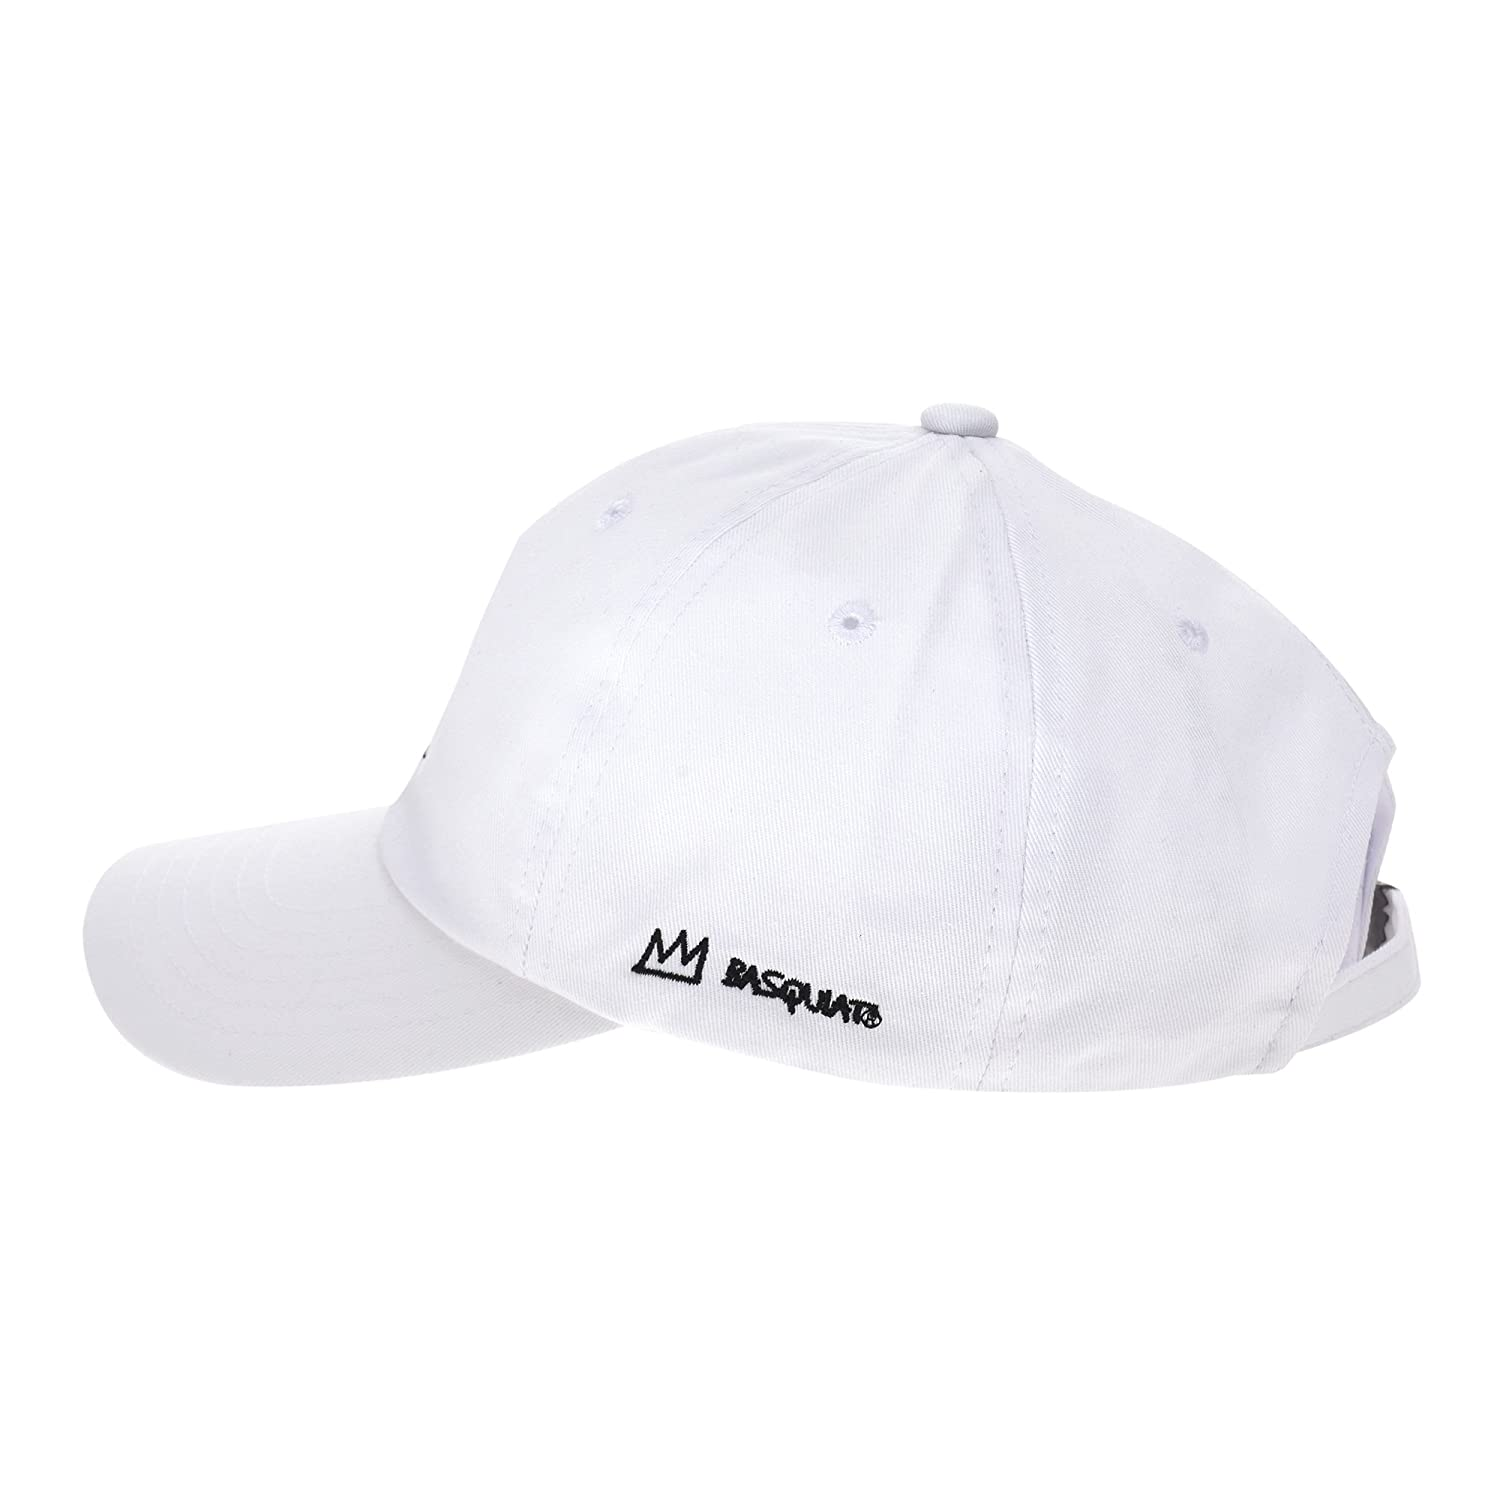 226780fe848 WITHMOONS Baseball Cap Jean-Michel Basquiat Statue of Liberty Embroidery  CR1702 (White)  Amazon.ca  Clothing   Accessories